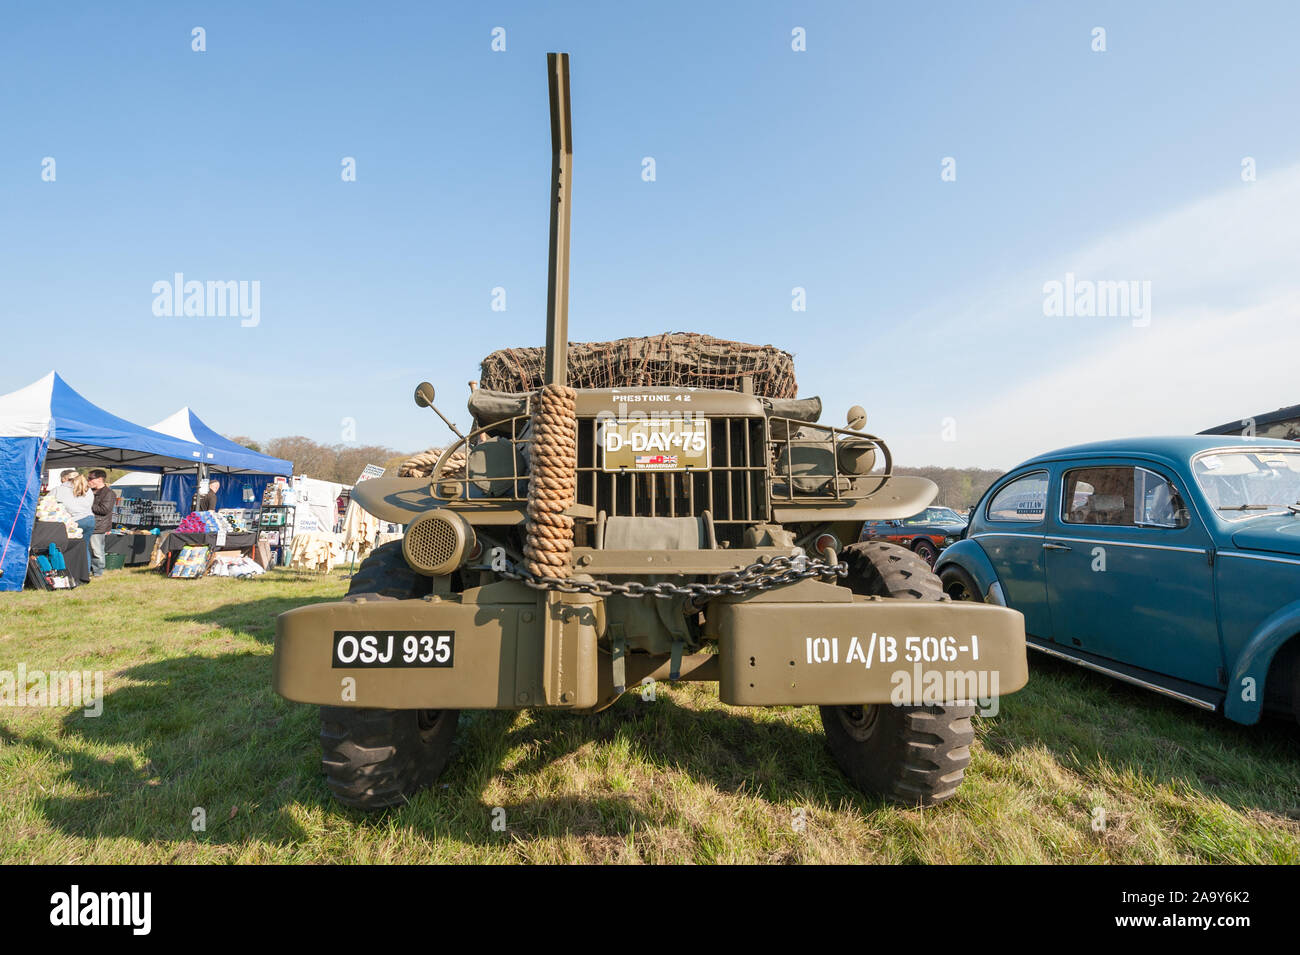 Vintage WW2 D-Day military truck at a meeting of classic vehicle in Rushmoor, UK - April 19, 2019 Stock Photo